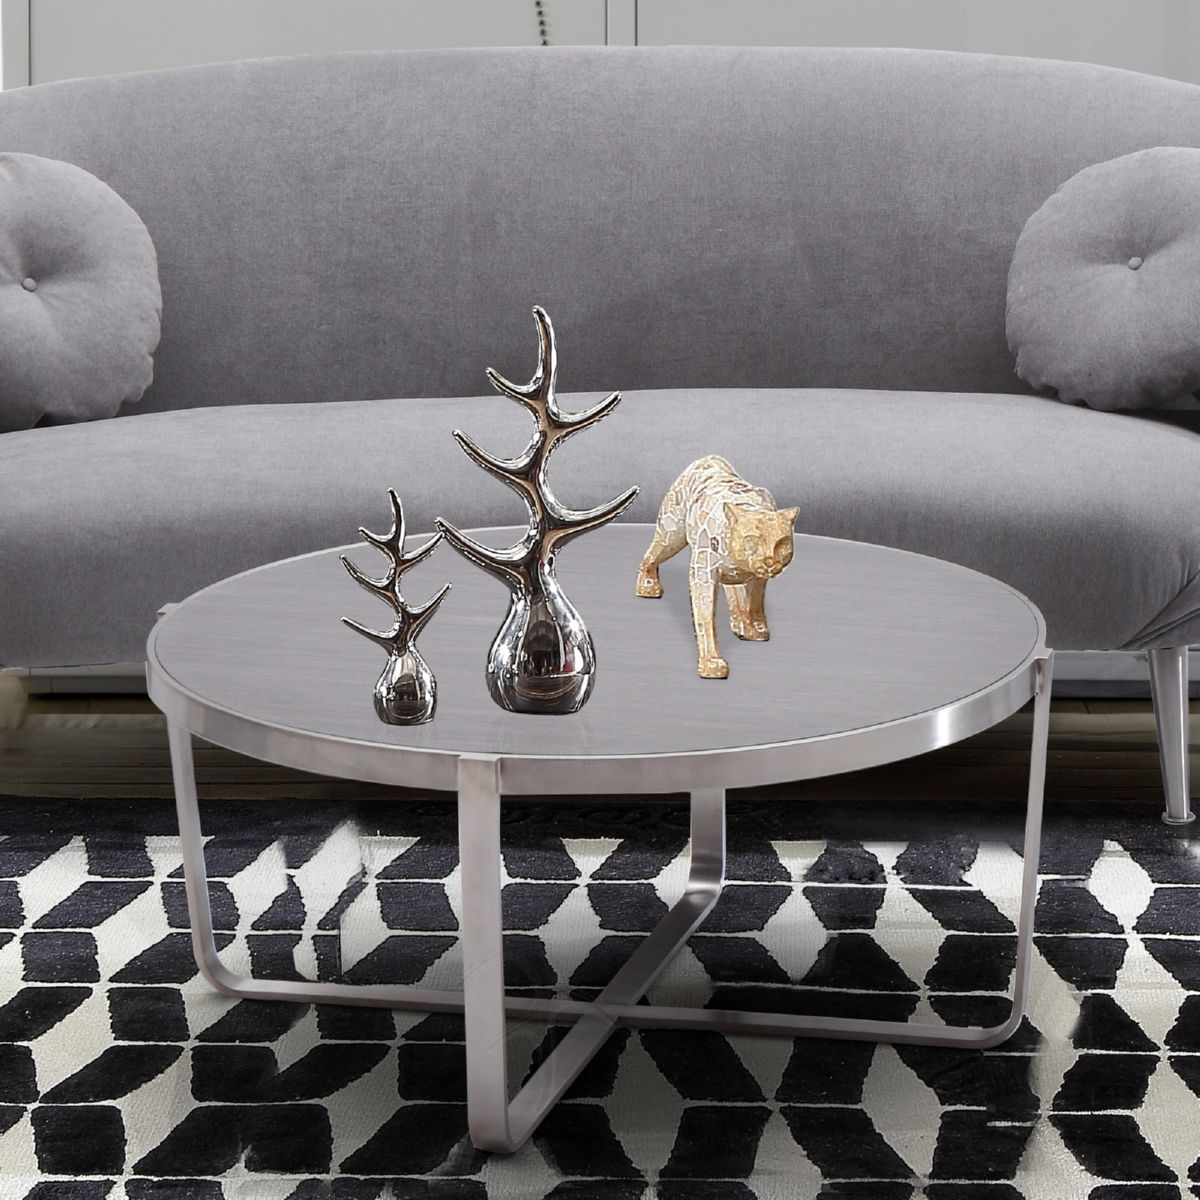 Lovely Armen Living Nova Coffee Table In Brushed Stainless Steel W/ Grey Wood Top